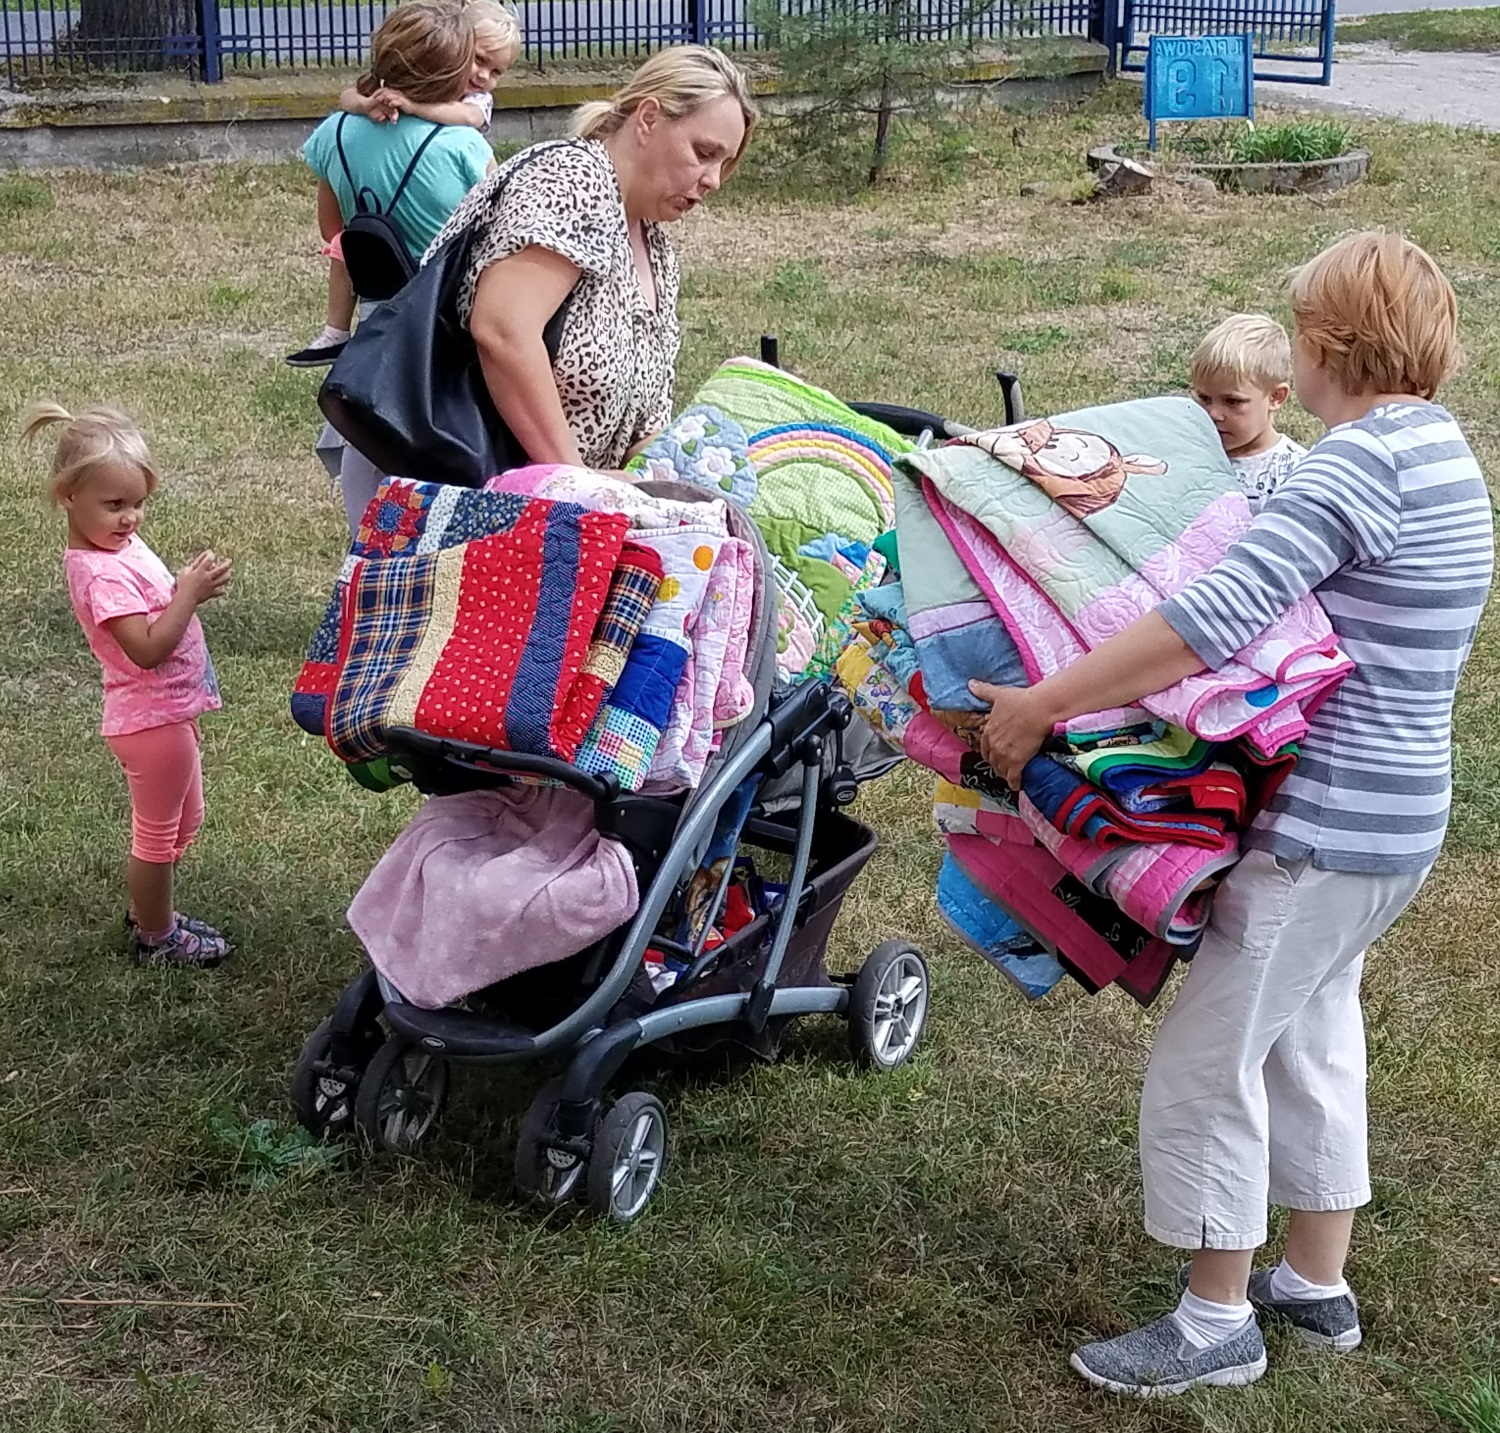 This lady was trying to get 9 quilts on this stroller. She has two sets of twins!